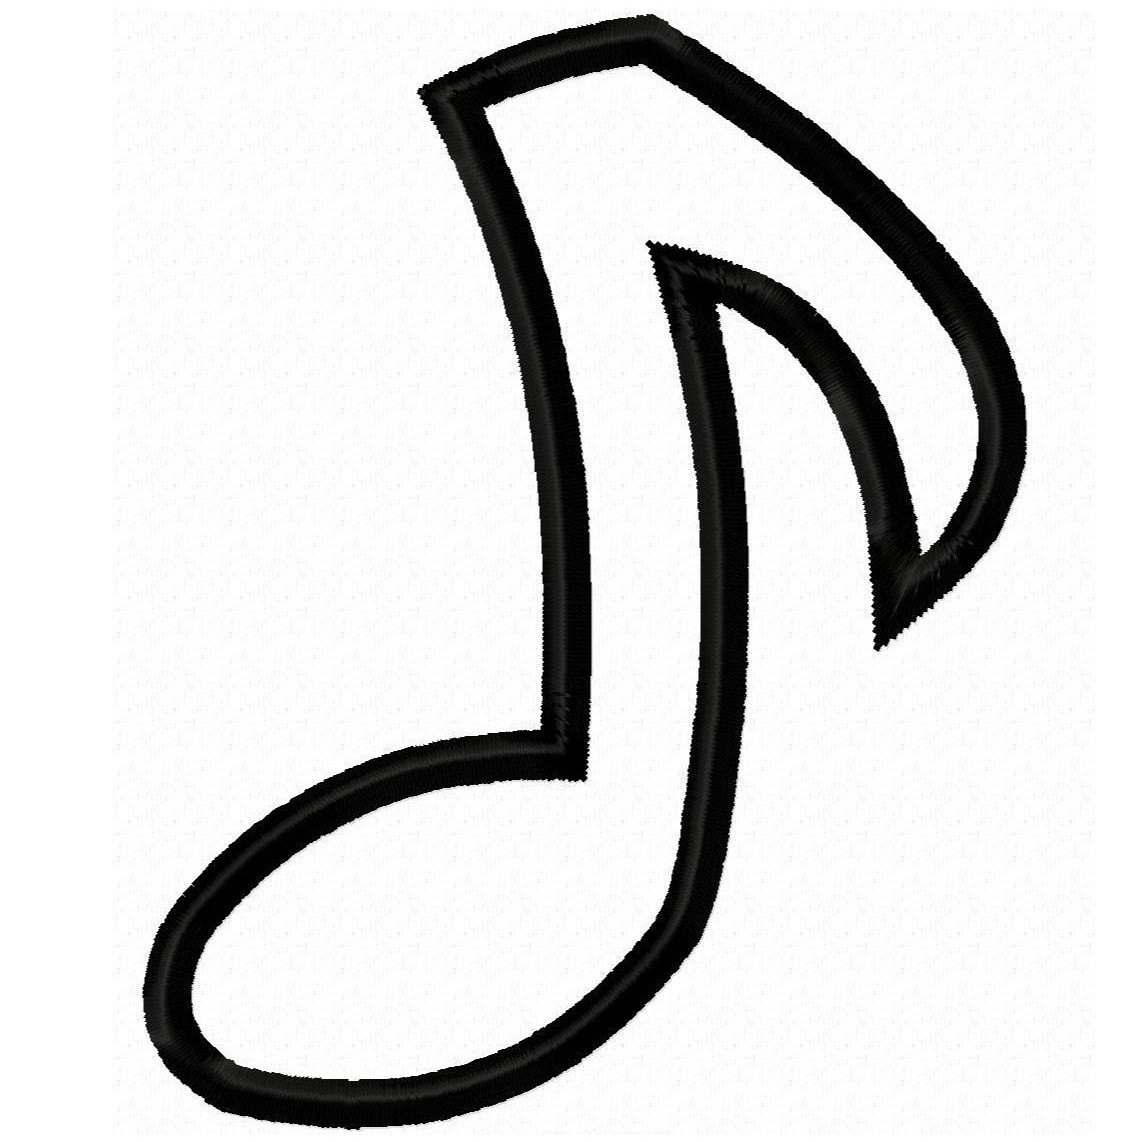 Printable Music Notes | Free Download Best Printable Music Notes On - Free Printable Pictures Of Music Notes